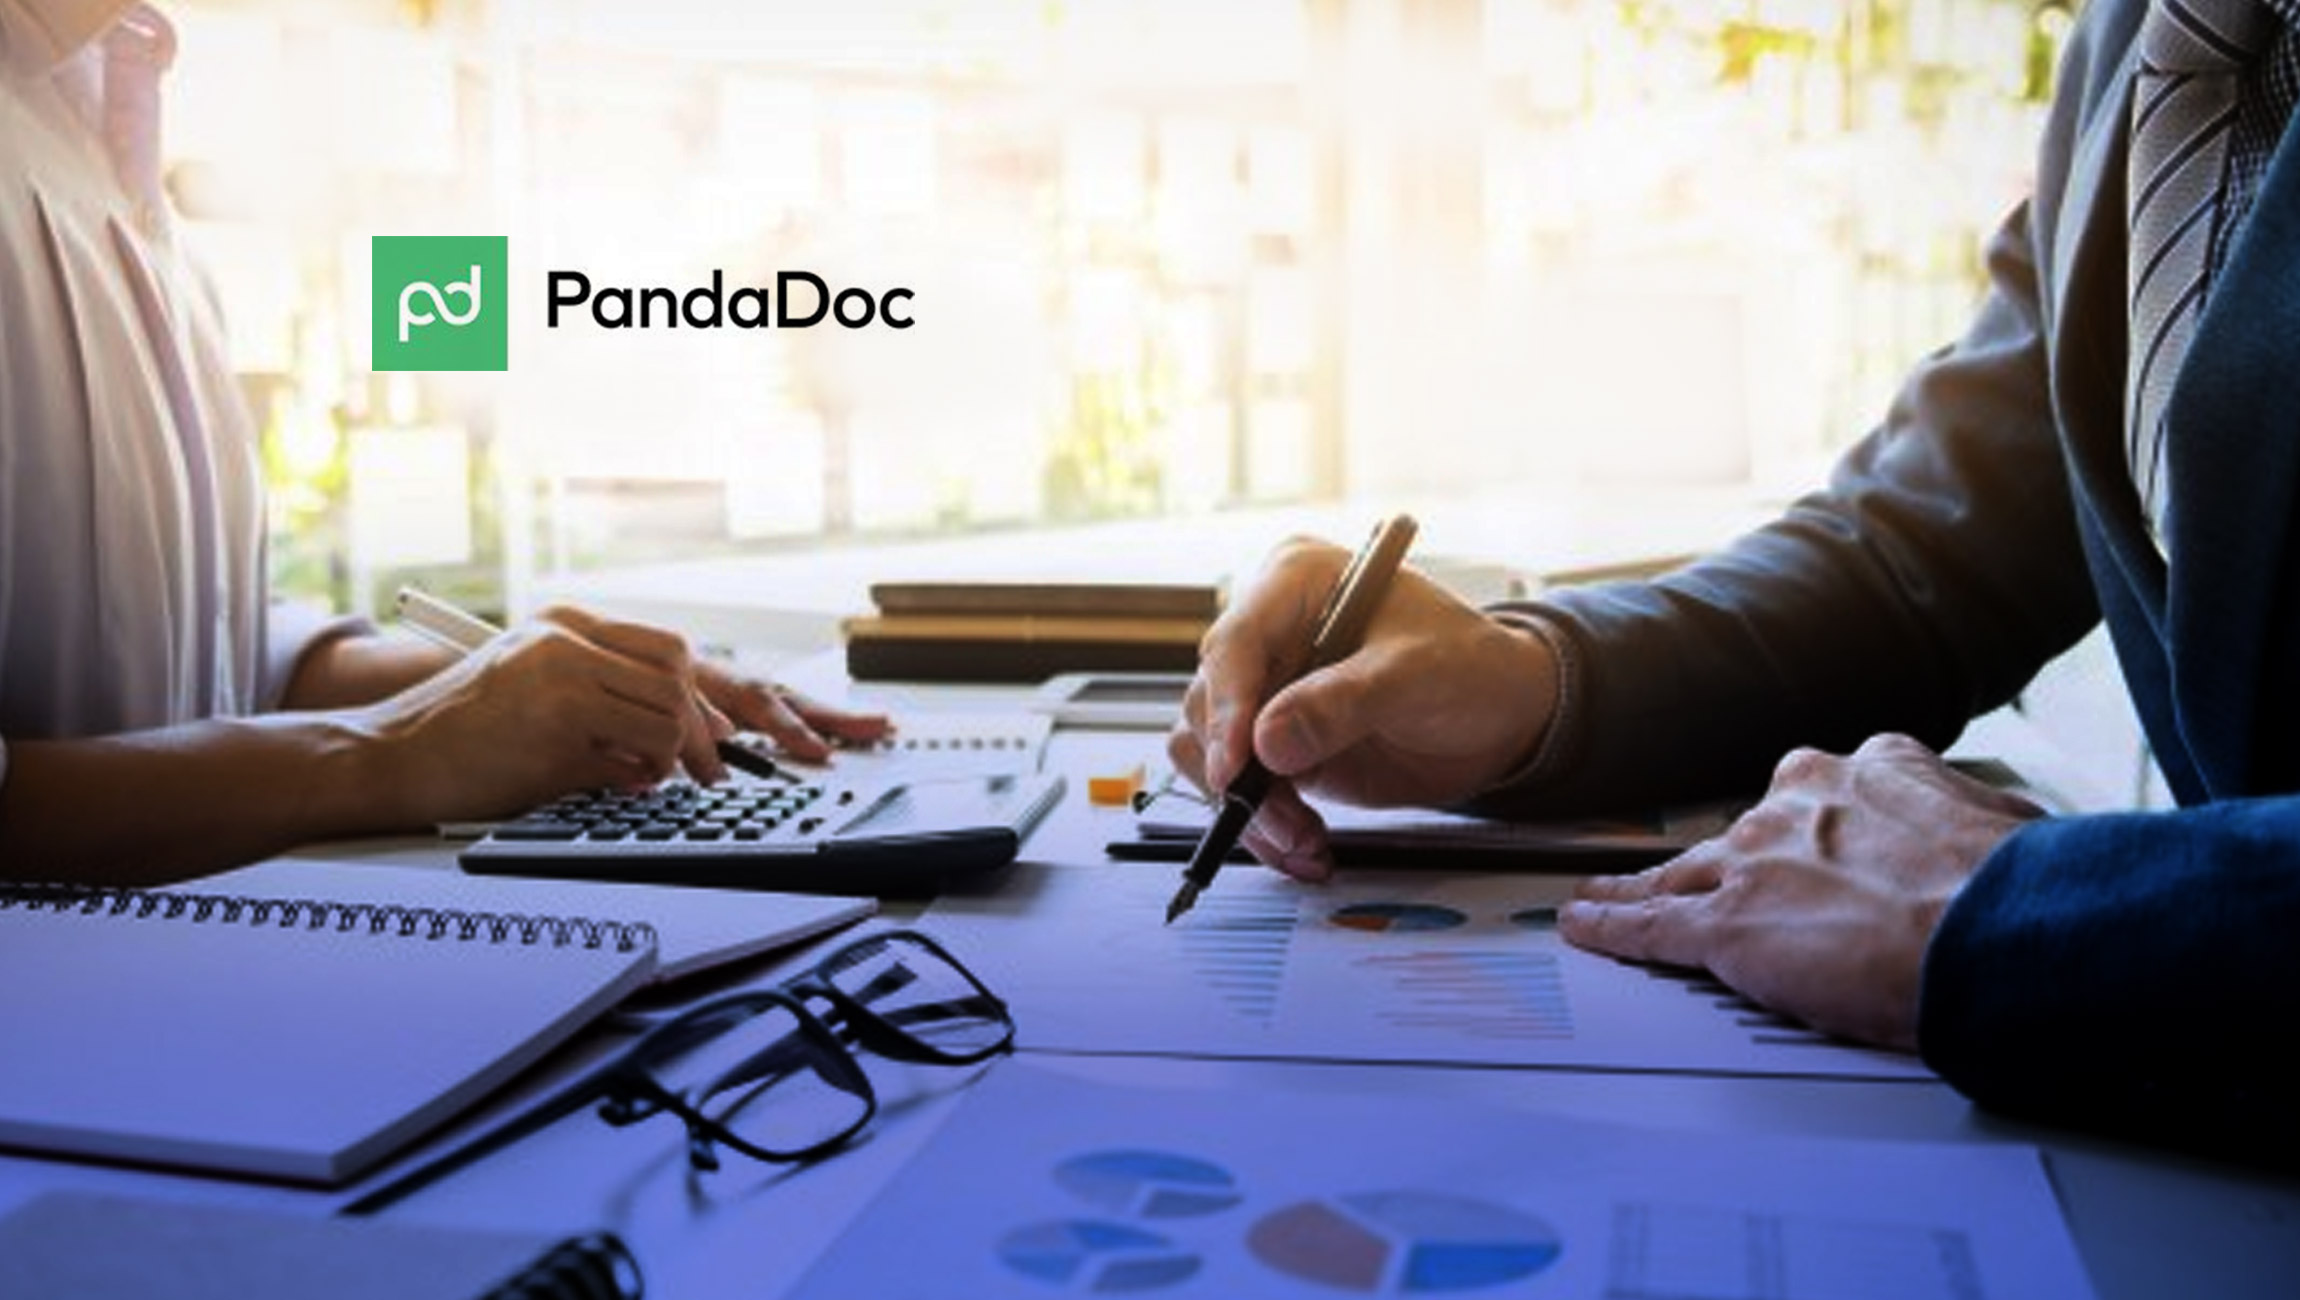 New PandaDoc Survey Finds eSignatures Mission Critical For a Productive Remote Working Environment